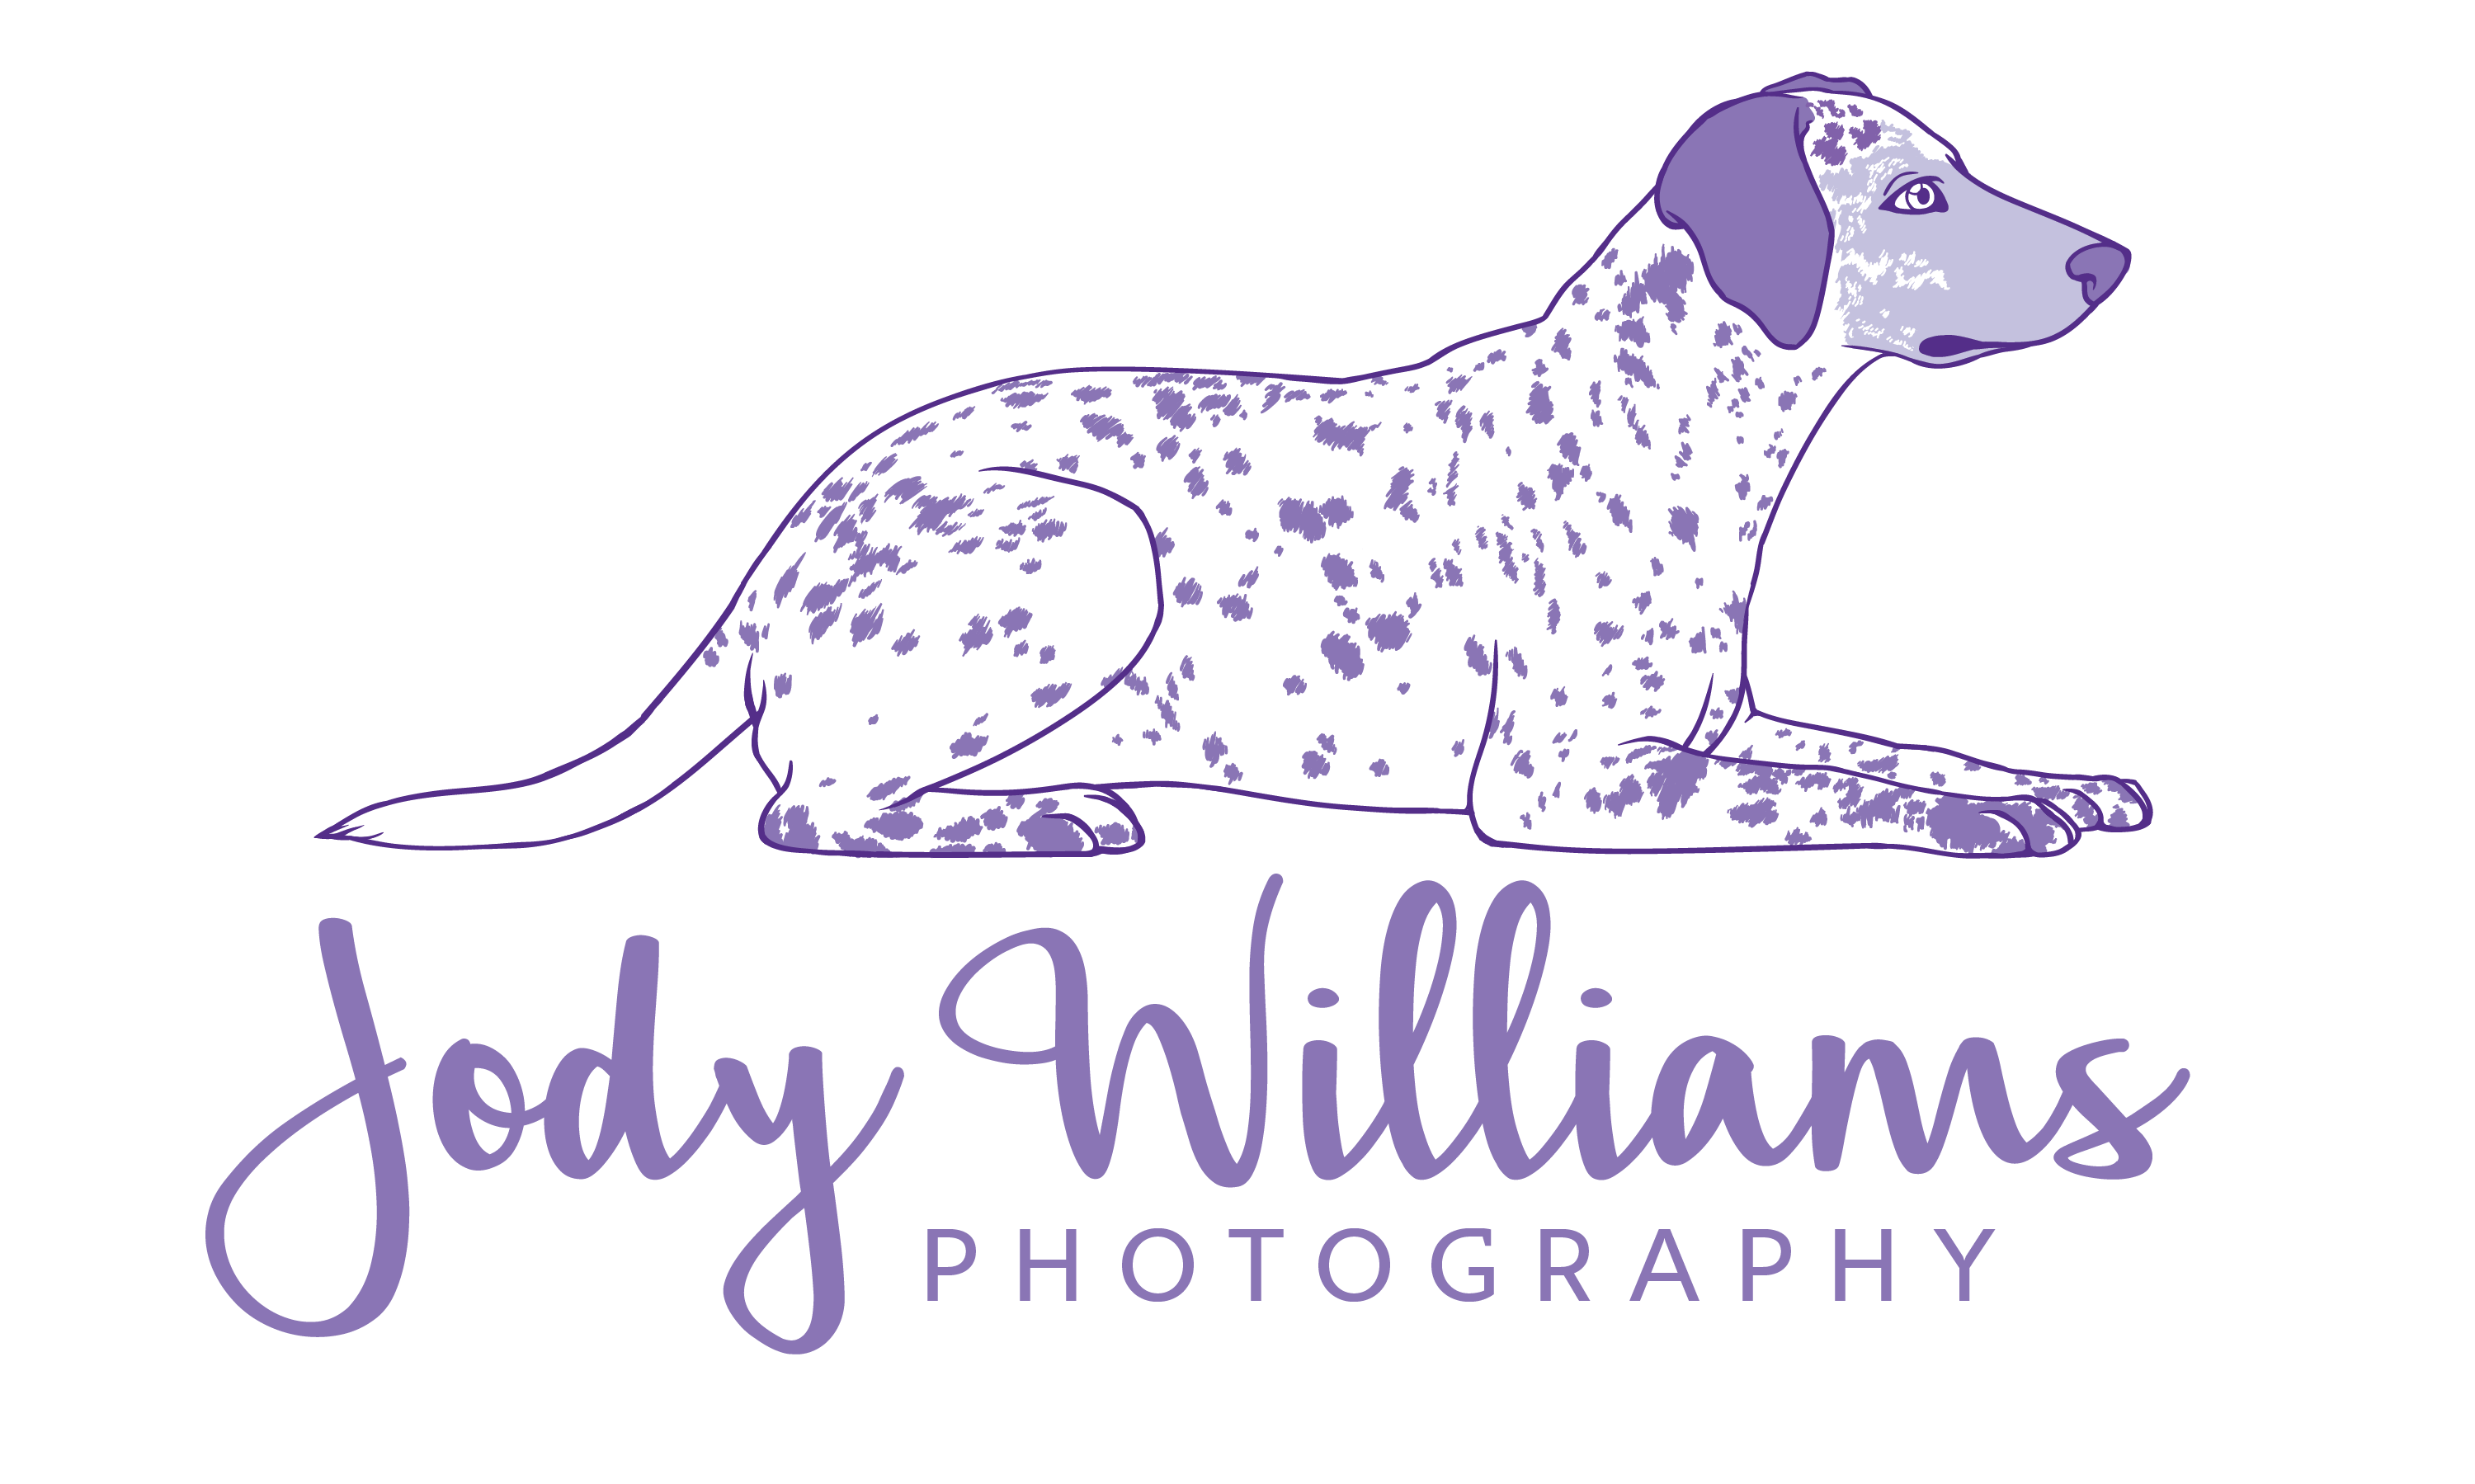 Jody Williams Photography